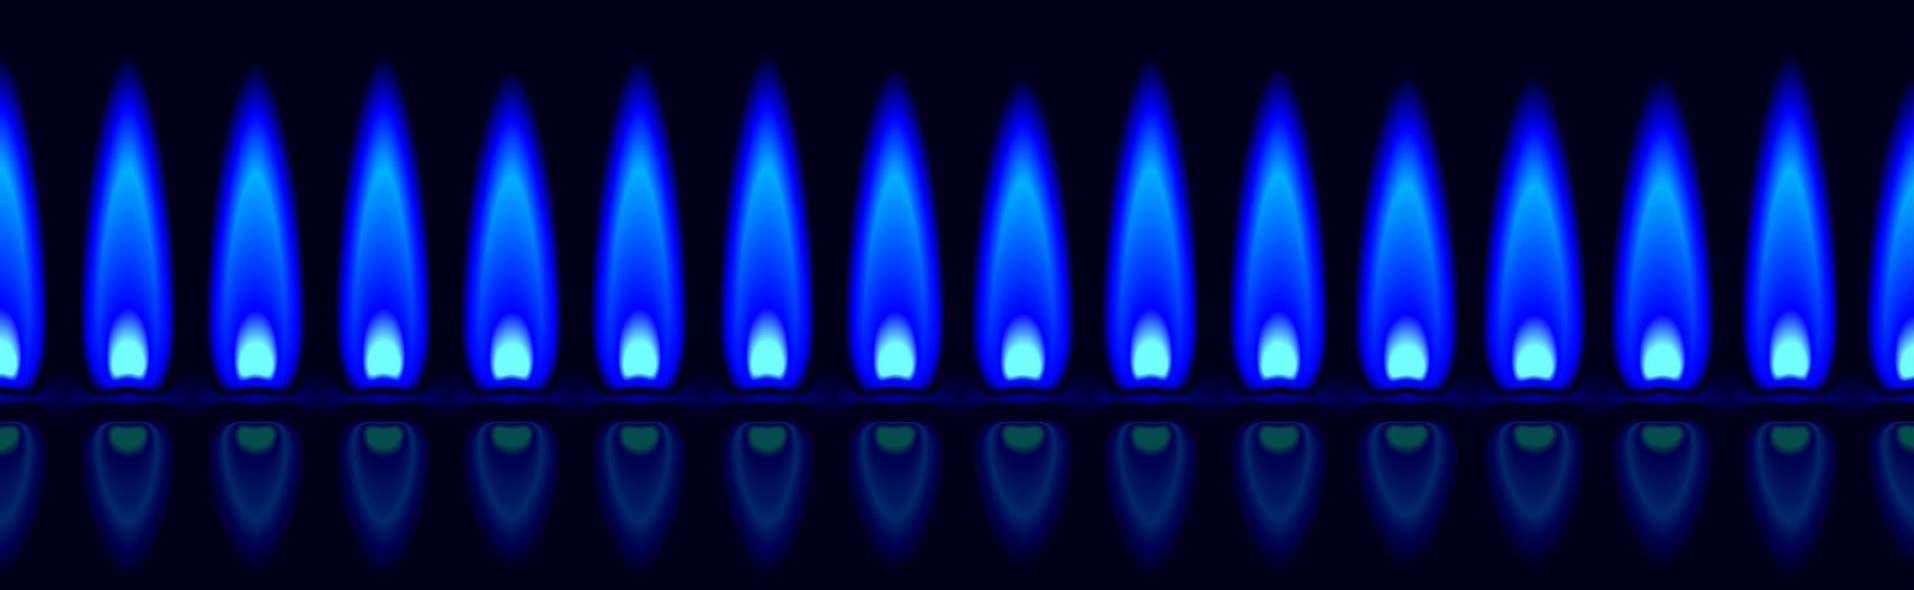 Blue Gas Flame From A Gas Fireplace Burner Installed By Portland Gas Piping, Explore Our Gas Piping Frequently Asked Questions